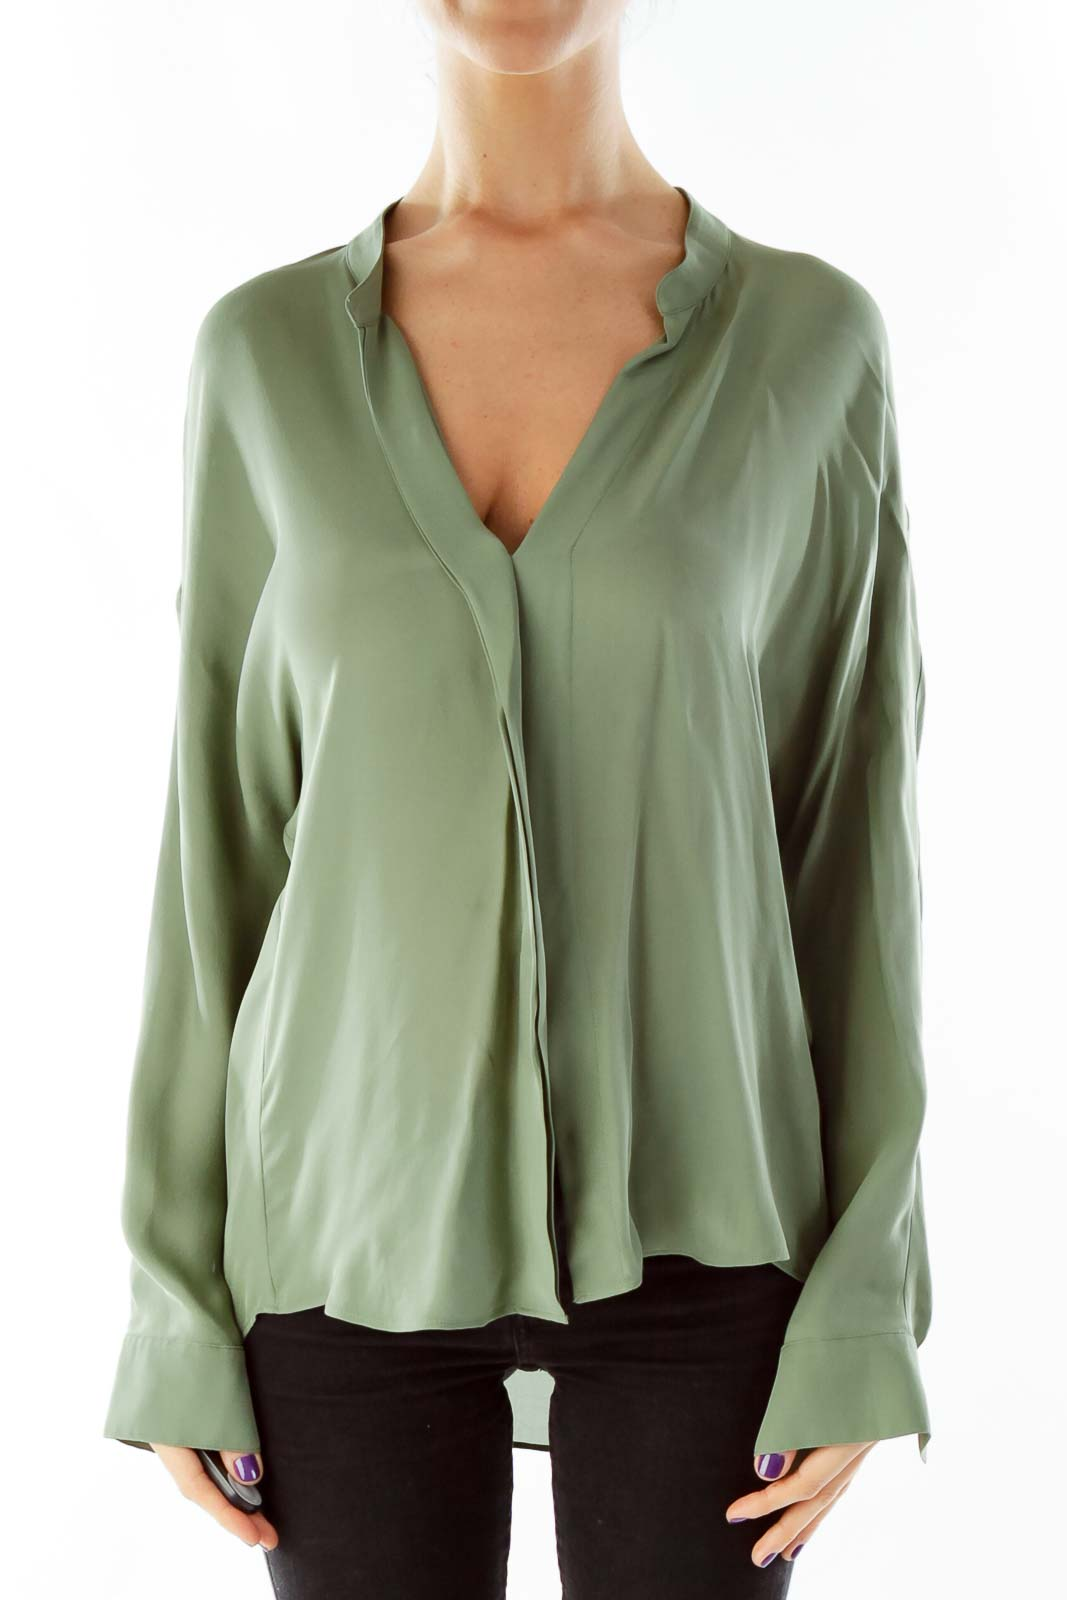 c46fe61c91069 HomeClothingTopsBlousesOlive Green Silk V-Neck Blouse. Previous. Wristwatch  by Versace